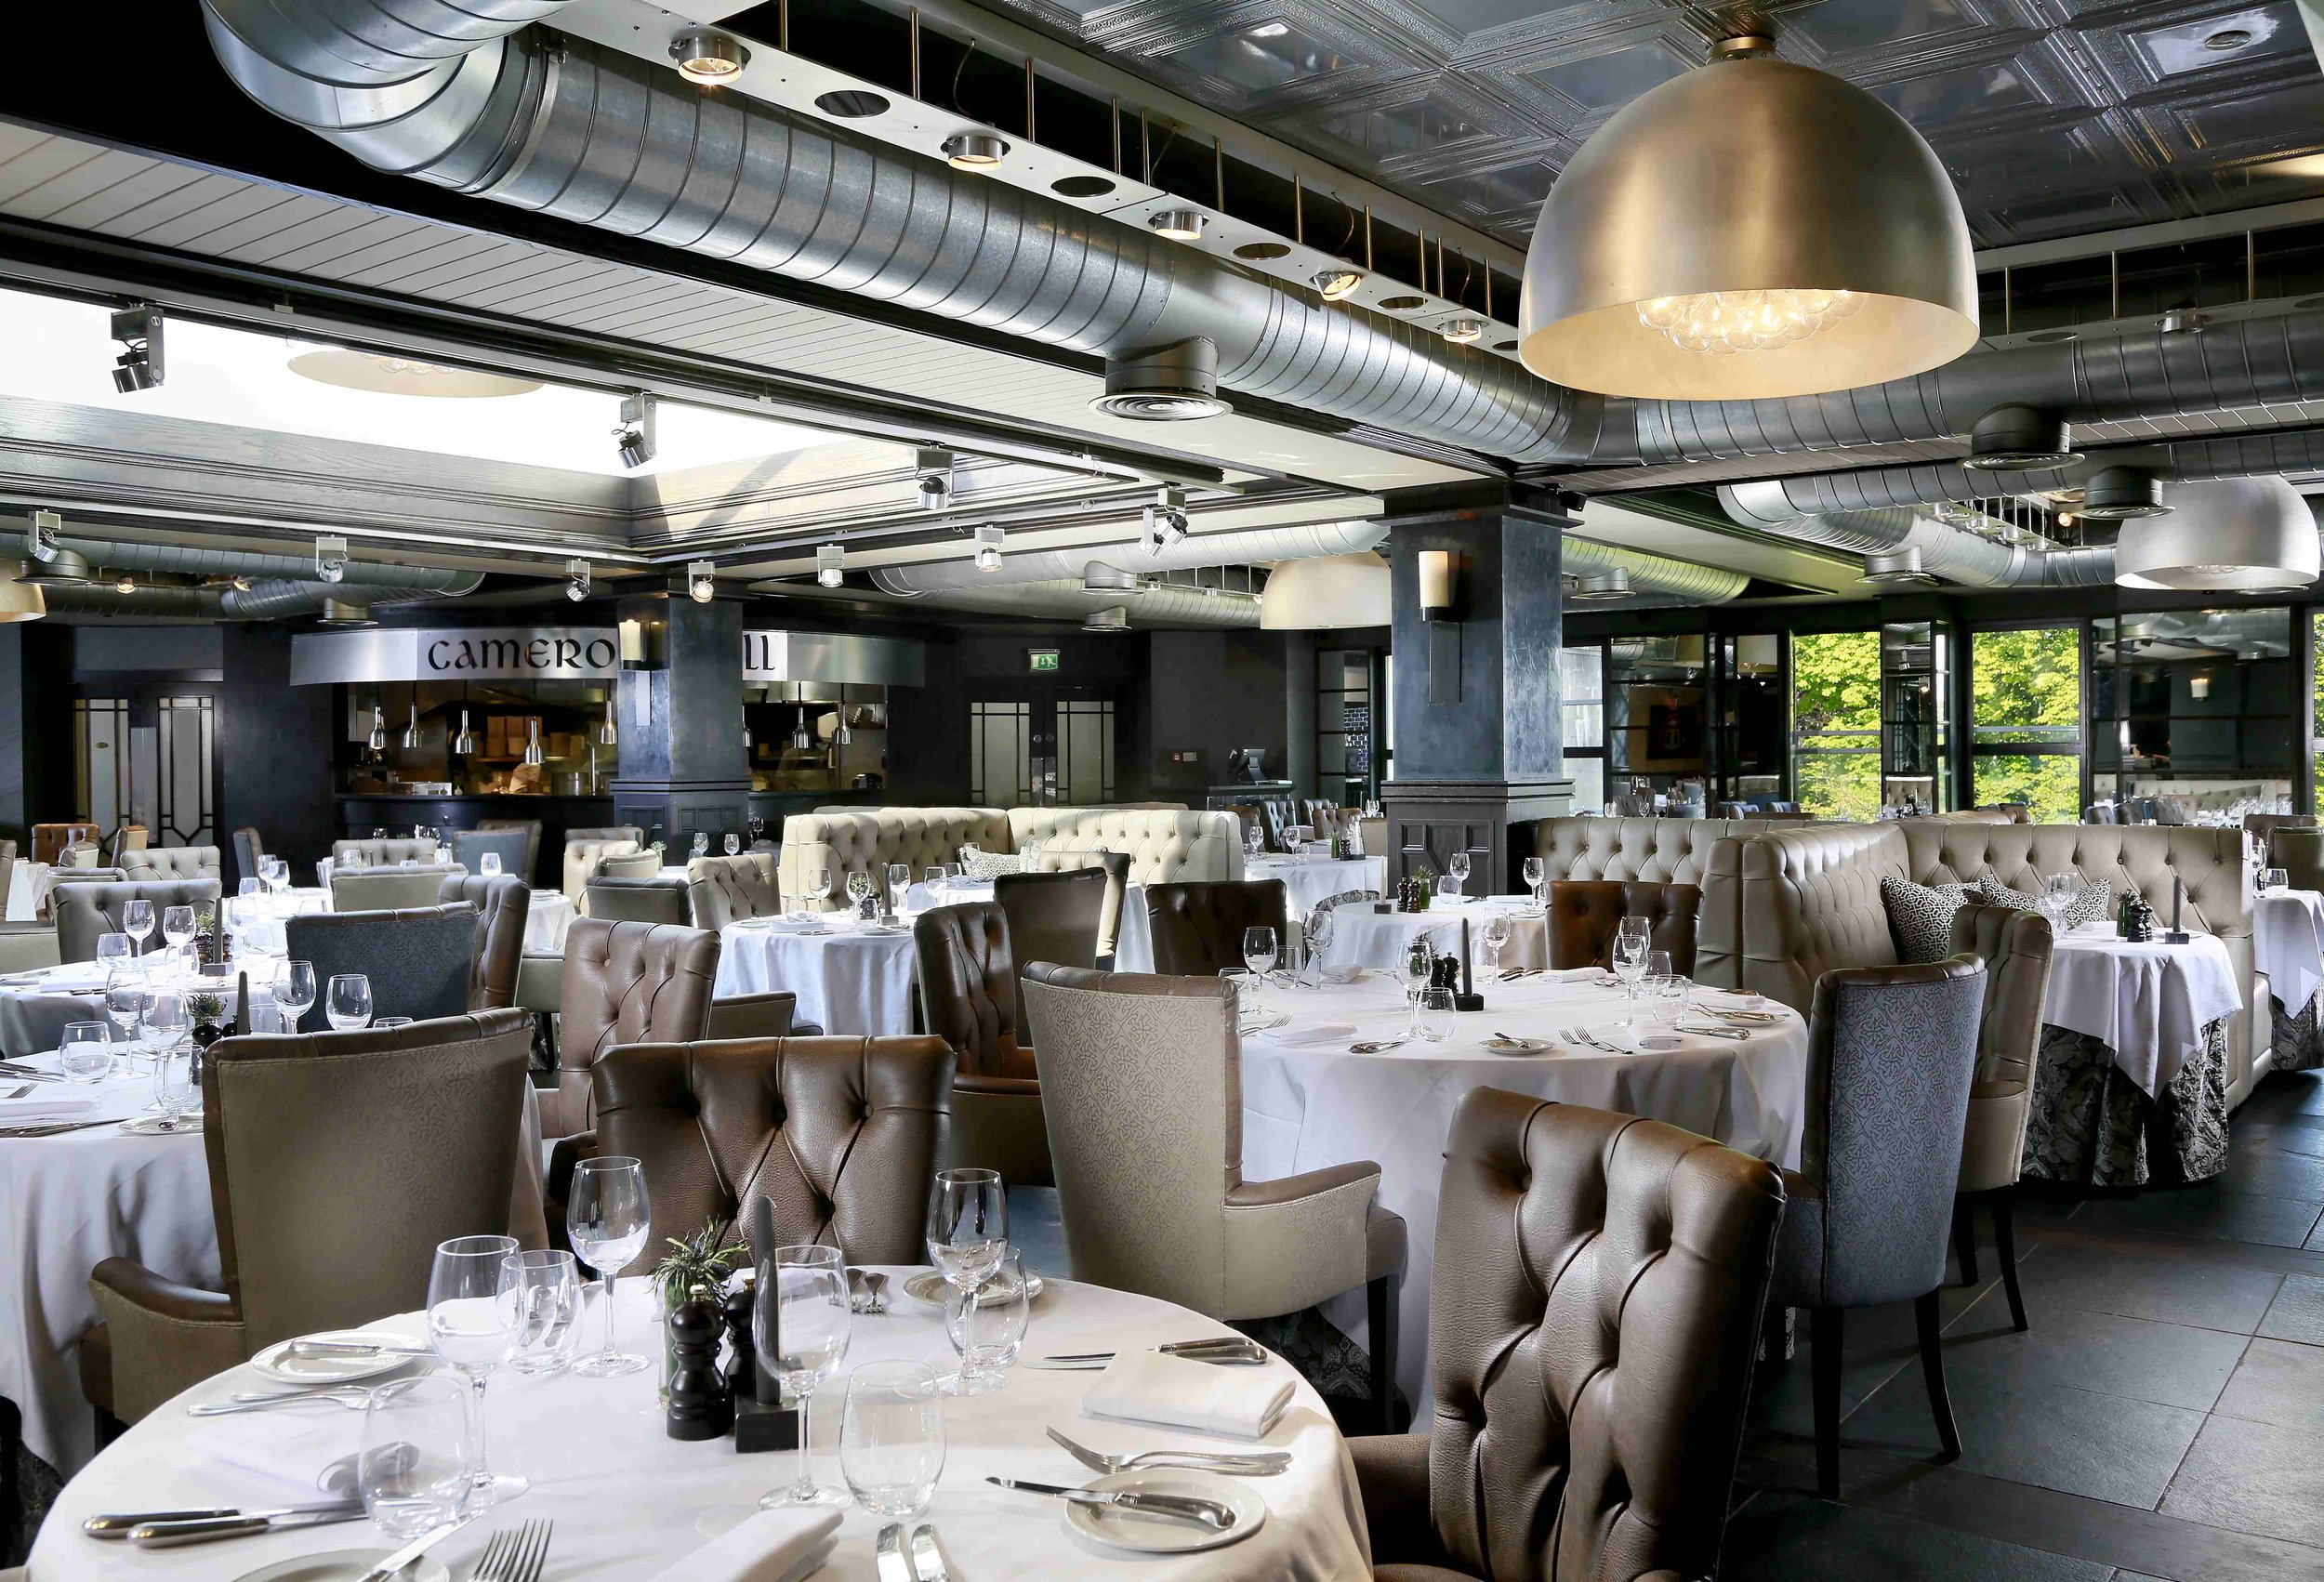 Cameron Grill bespoke dining chairs and bqt seating